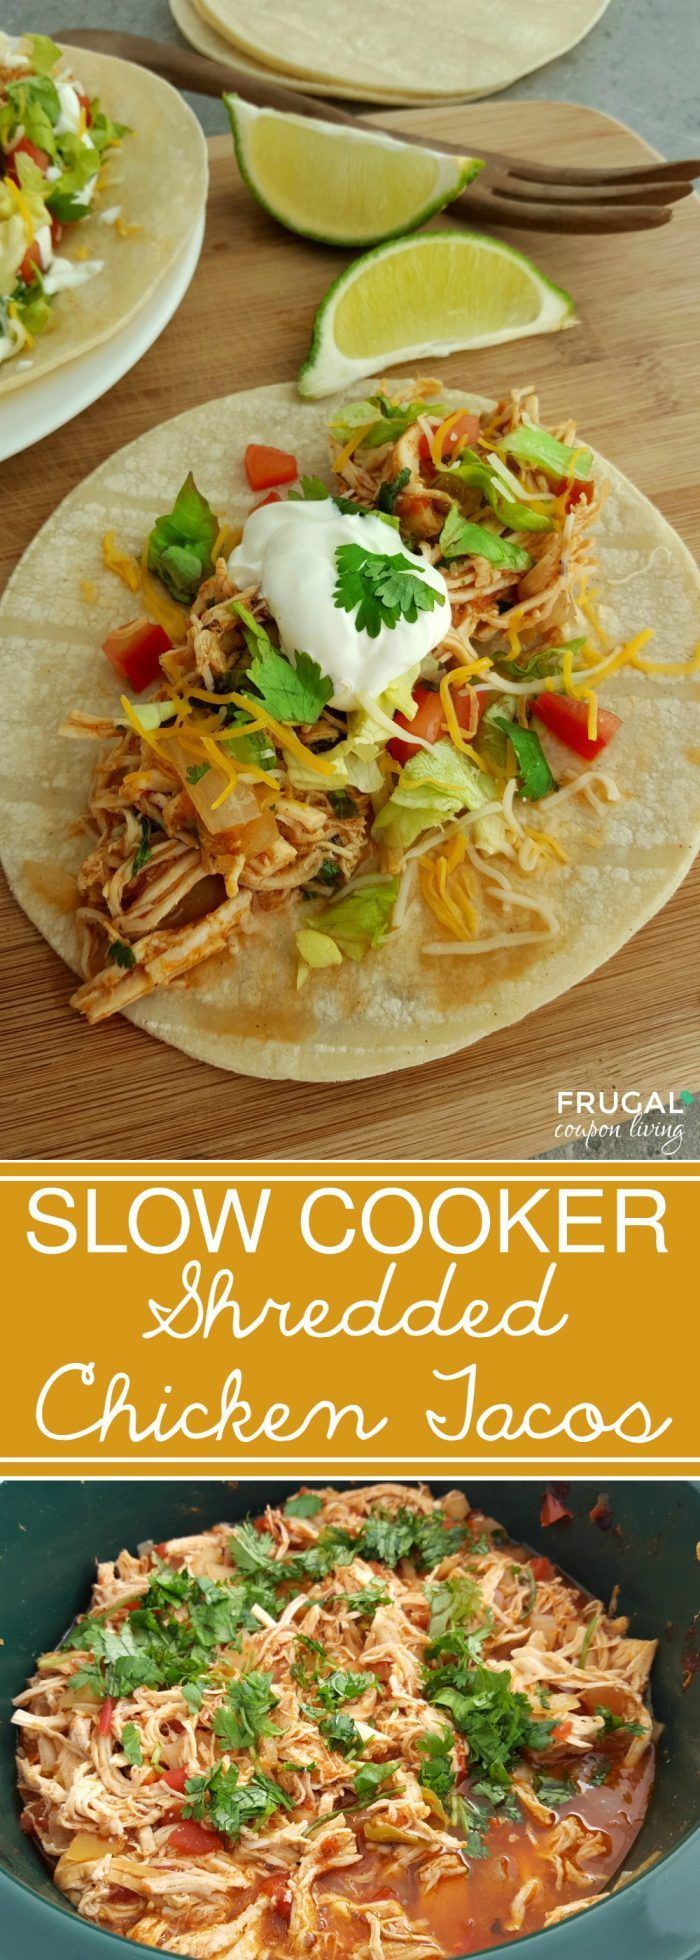 Shredded Chicken Tacos in the Slow Cooker